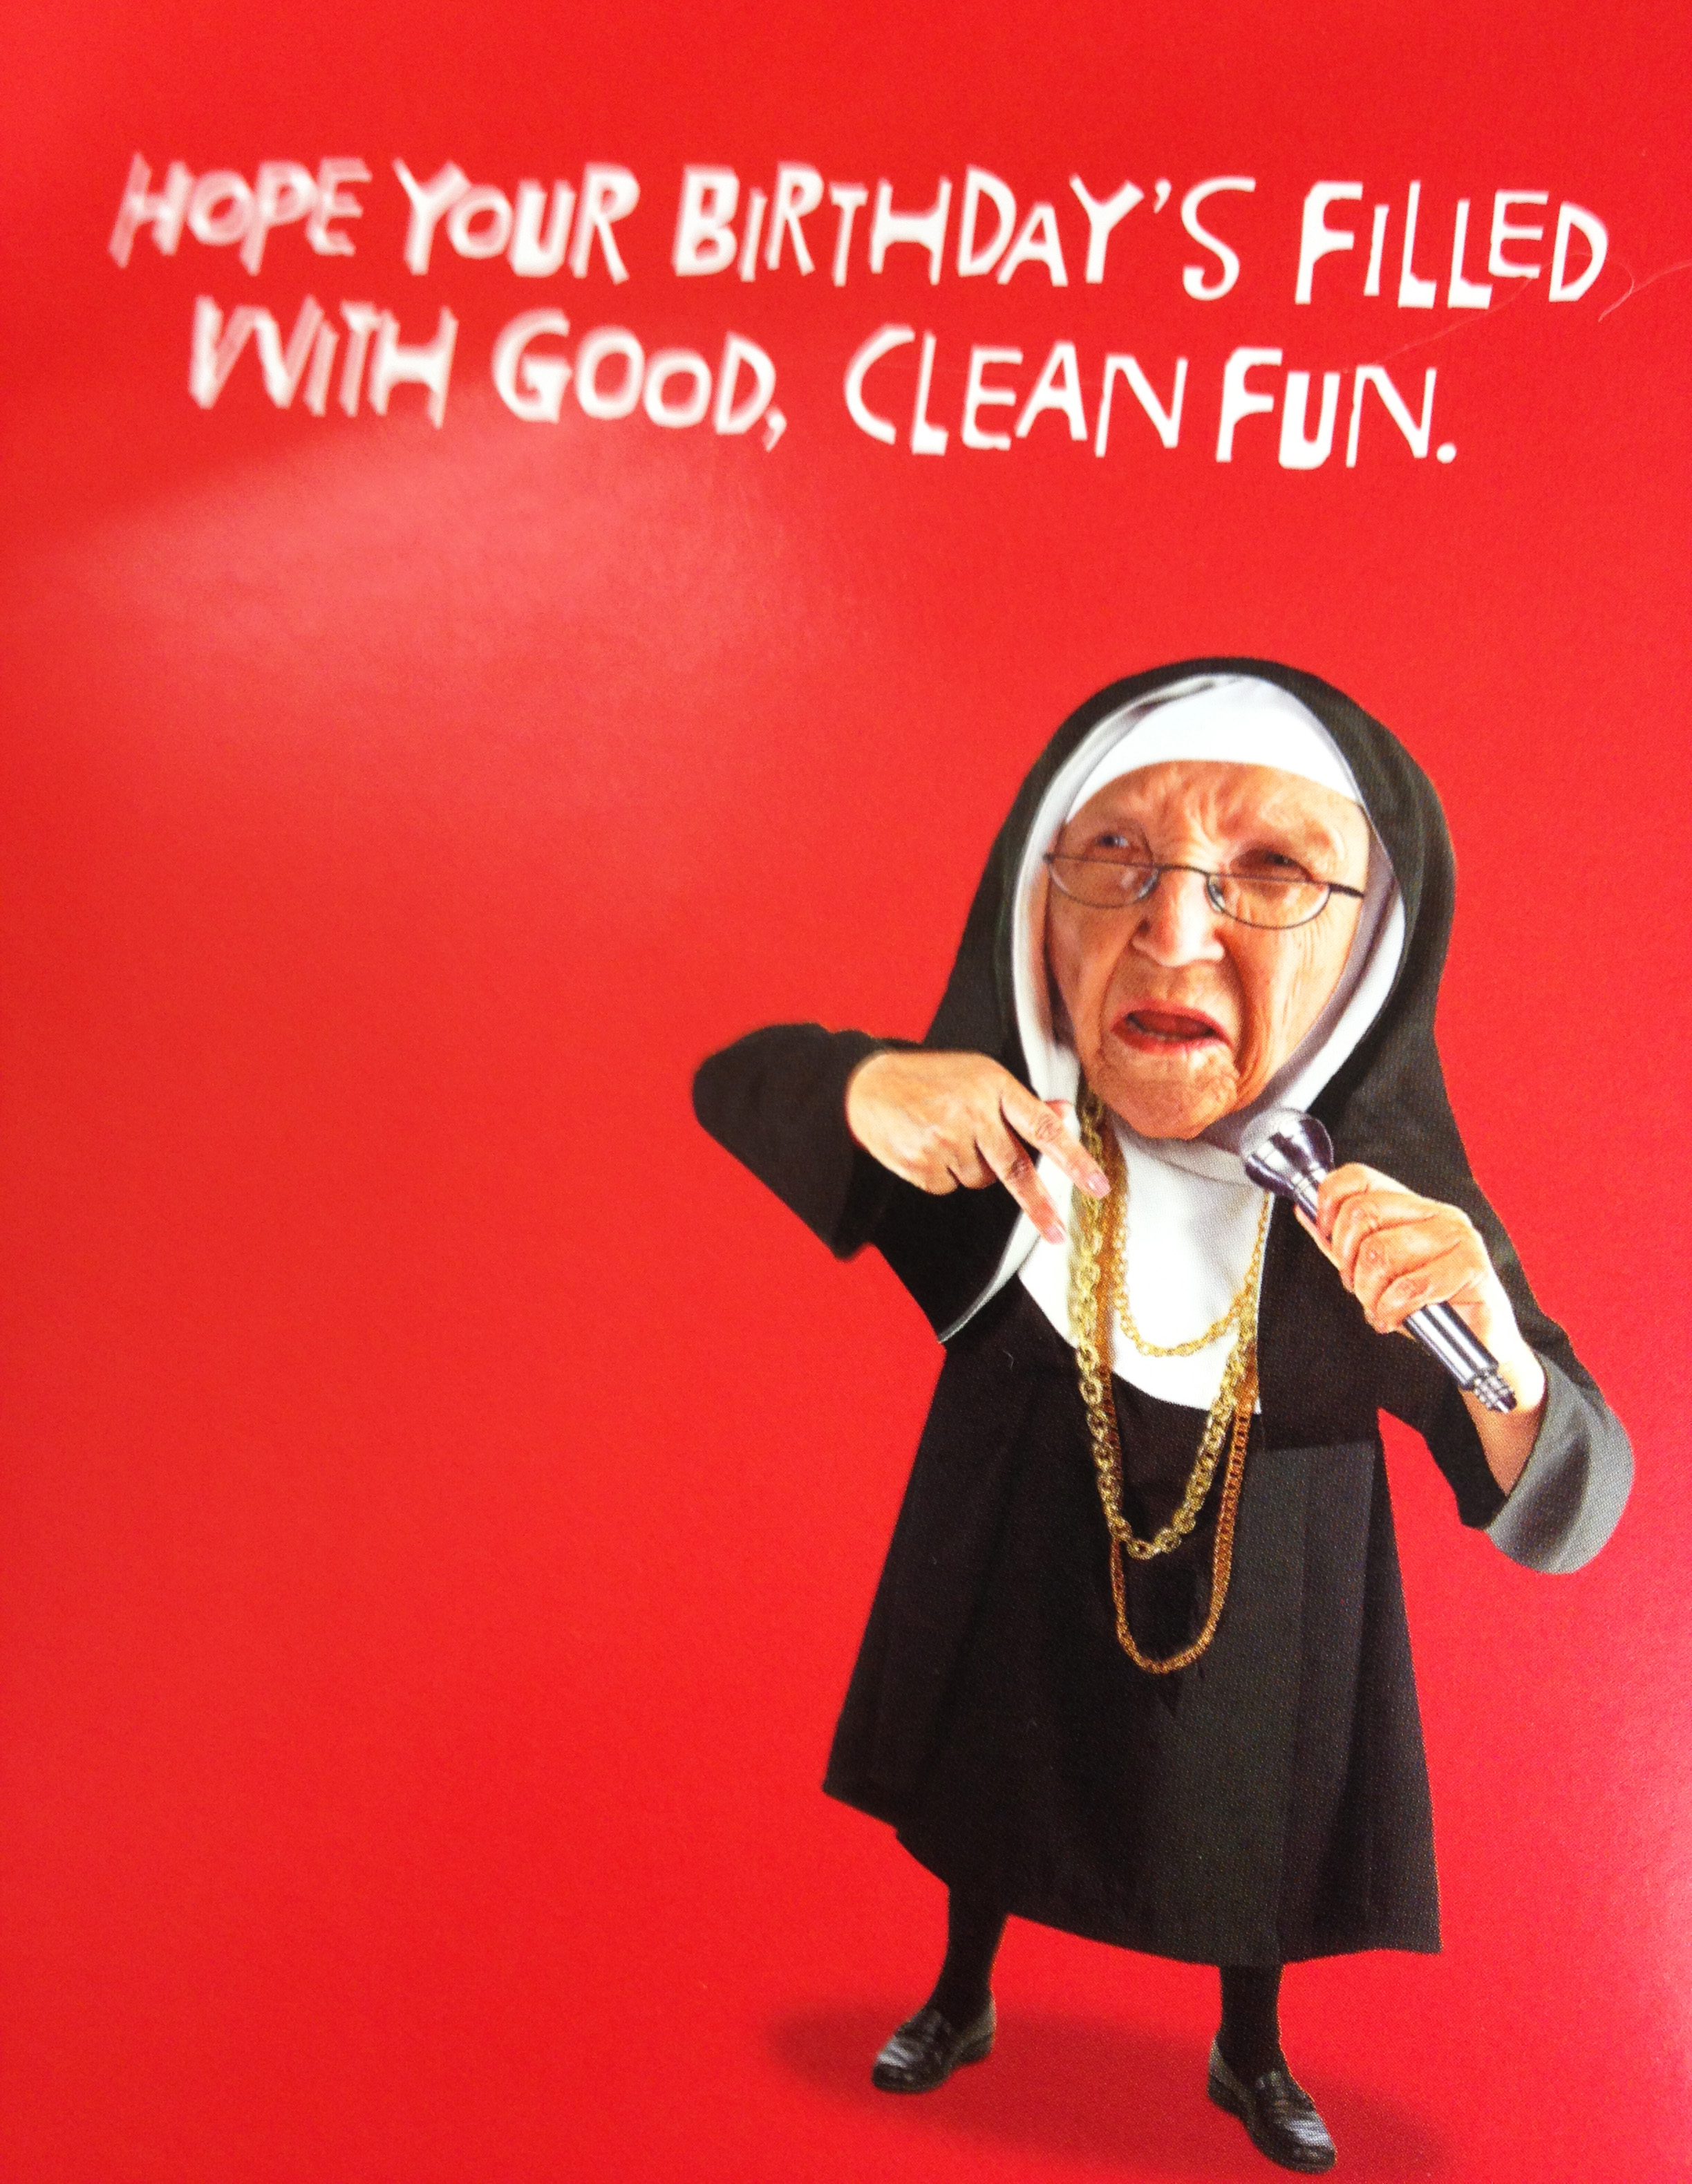 Is Good Clean Fun Possible No Says American Greetings Not According To The Catholic Church